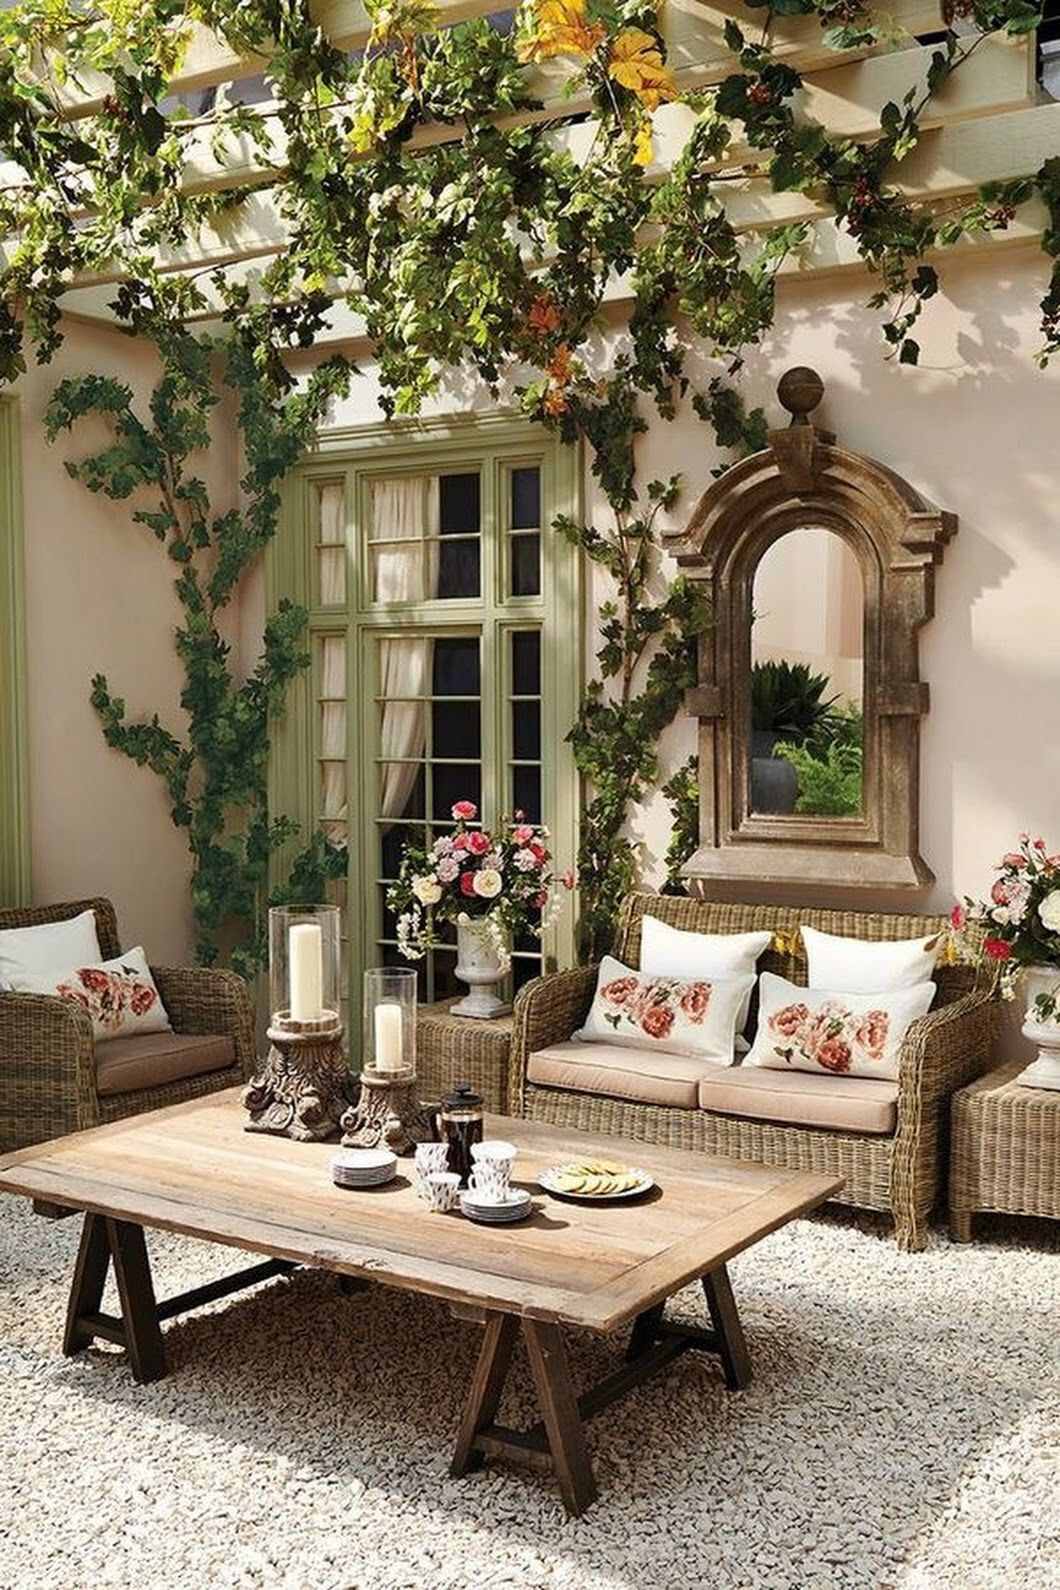 Garden decor kijiji  Comfortable seating means longer time spent outdoorssuch a cozy